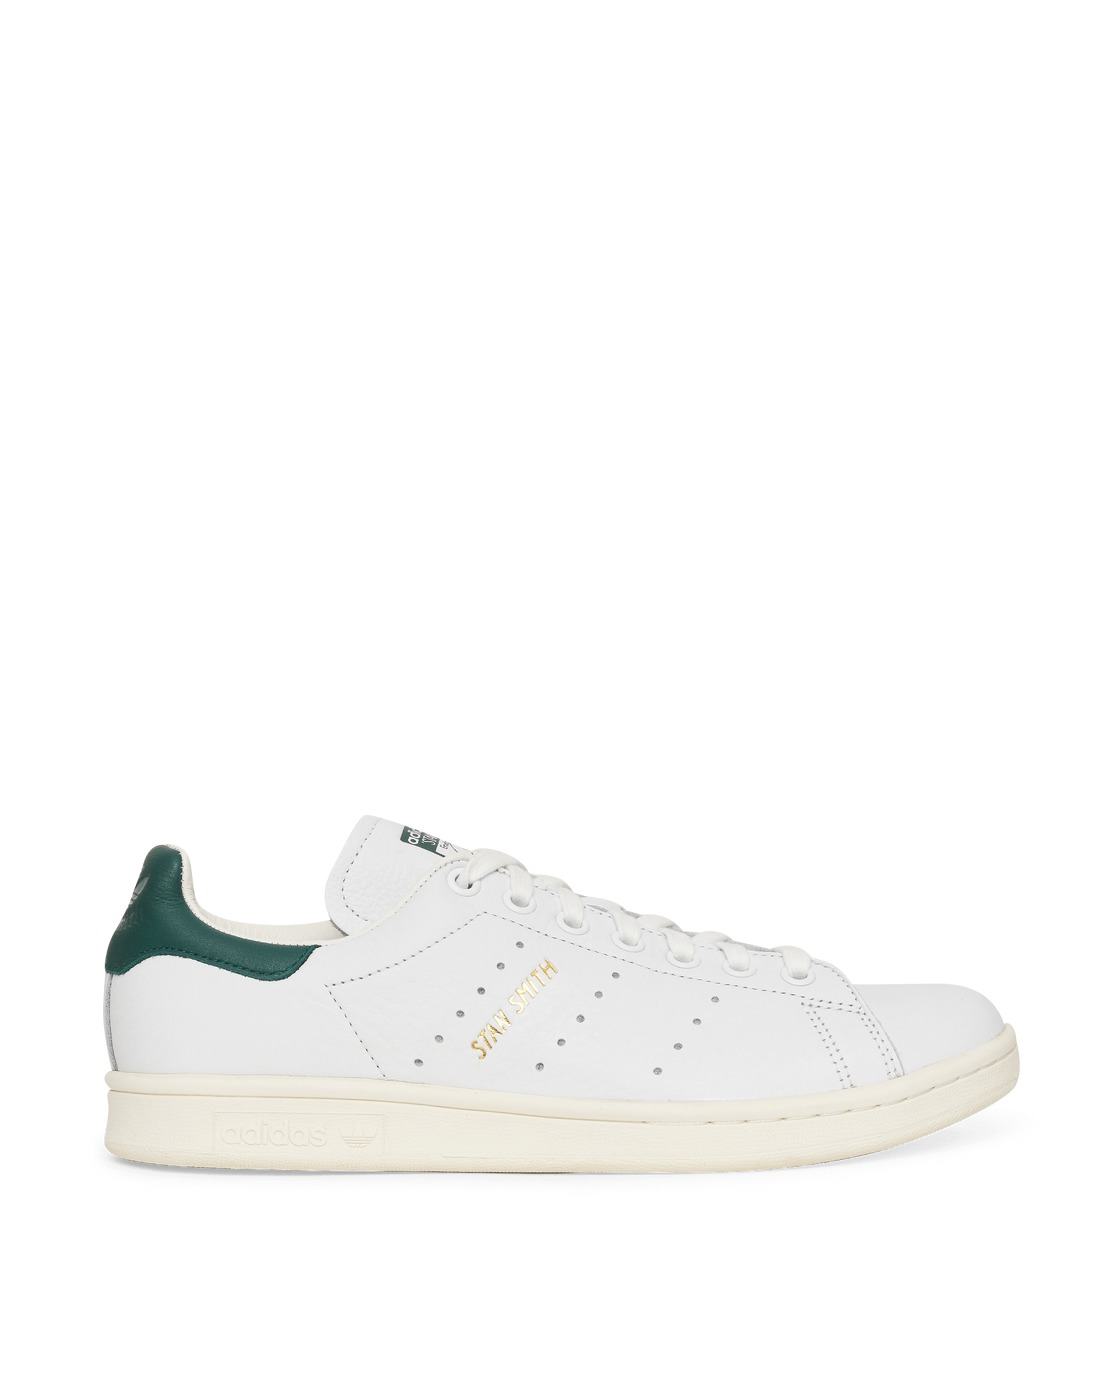 Photo: Adidas Originals Stan Smith Sneakers White/Collegiate Green